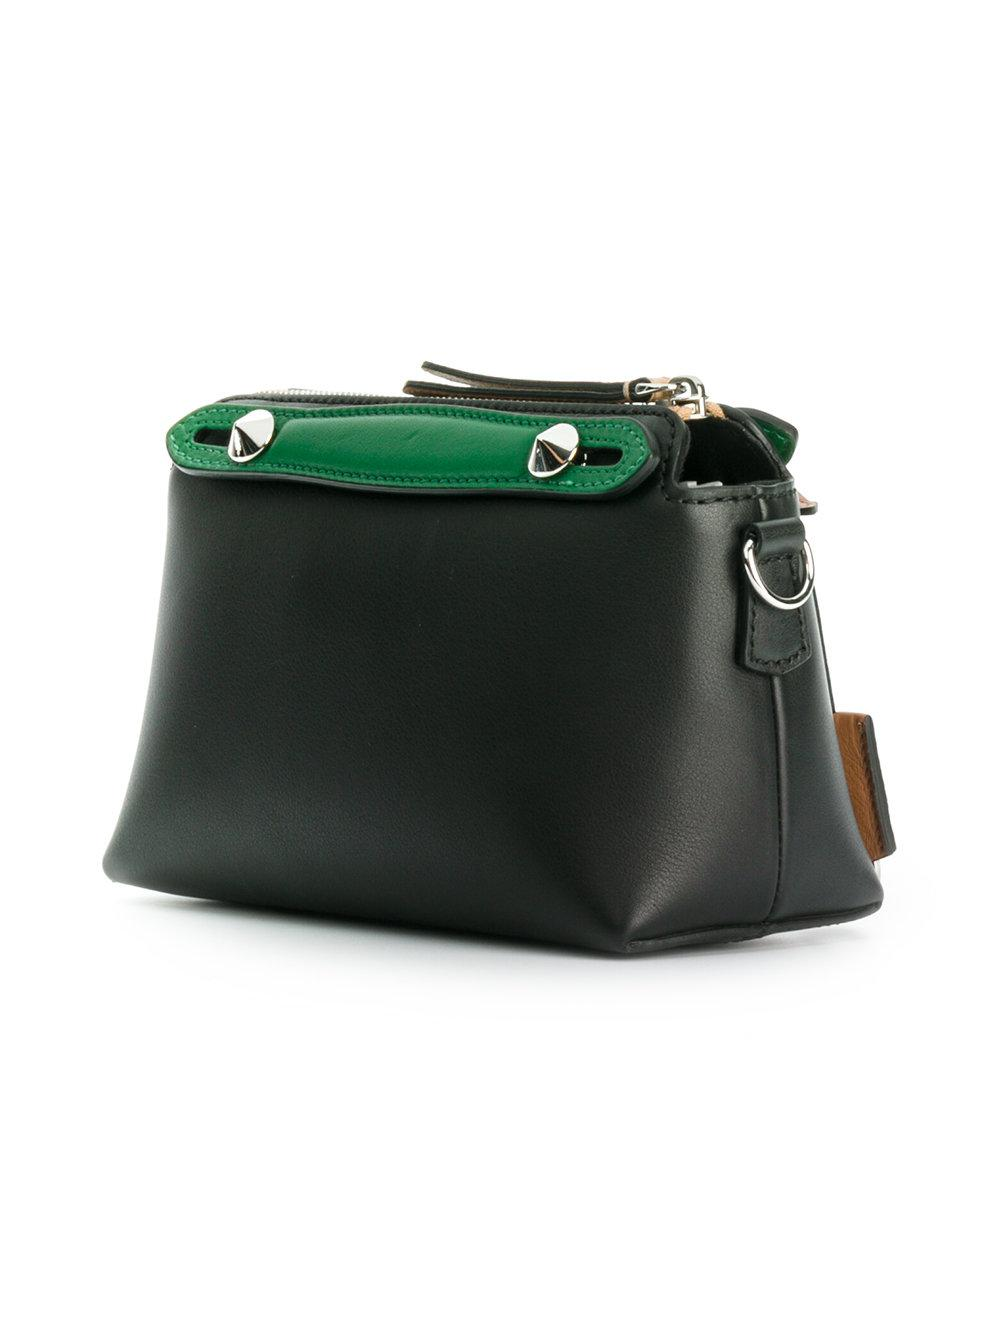 Fendi Leather By The Way Tote in Black - Lyst